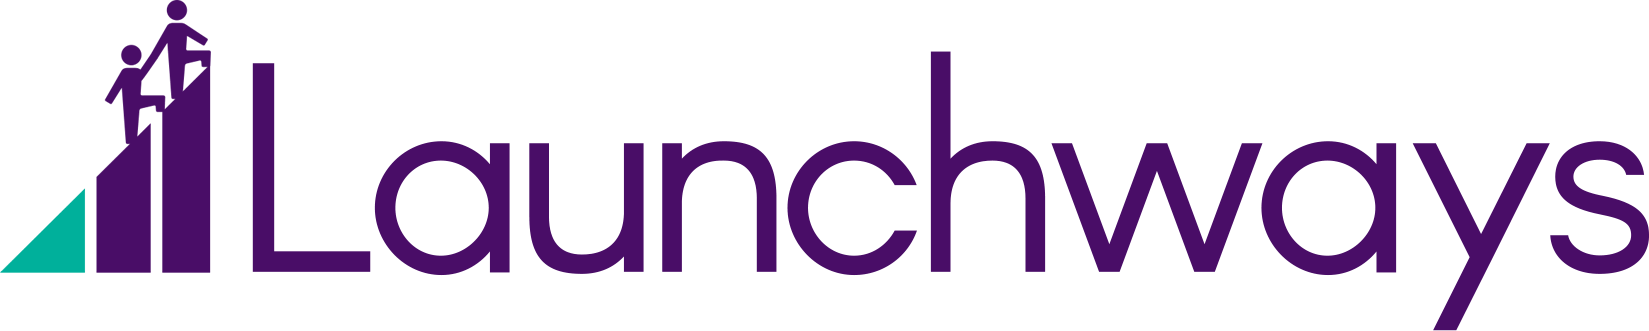 Launchways (formerly Taylor Group)